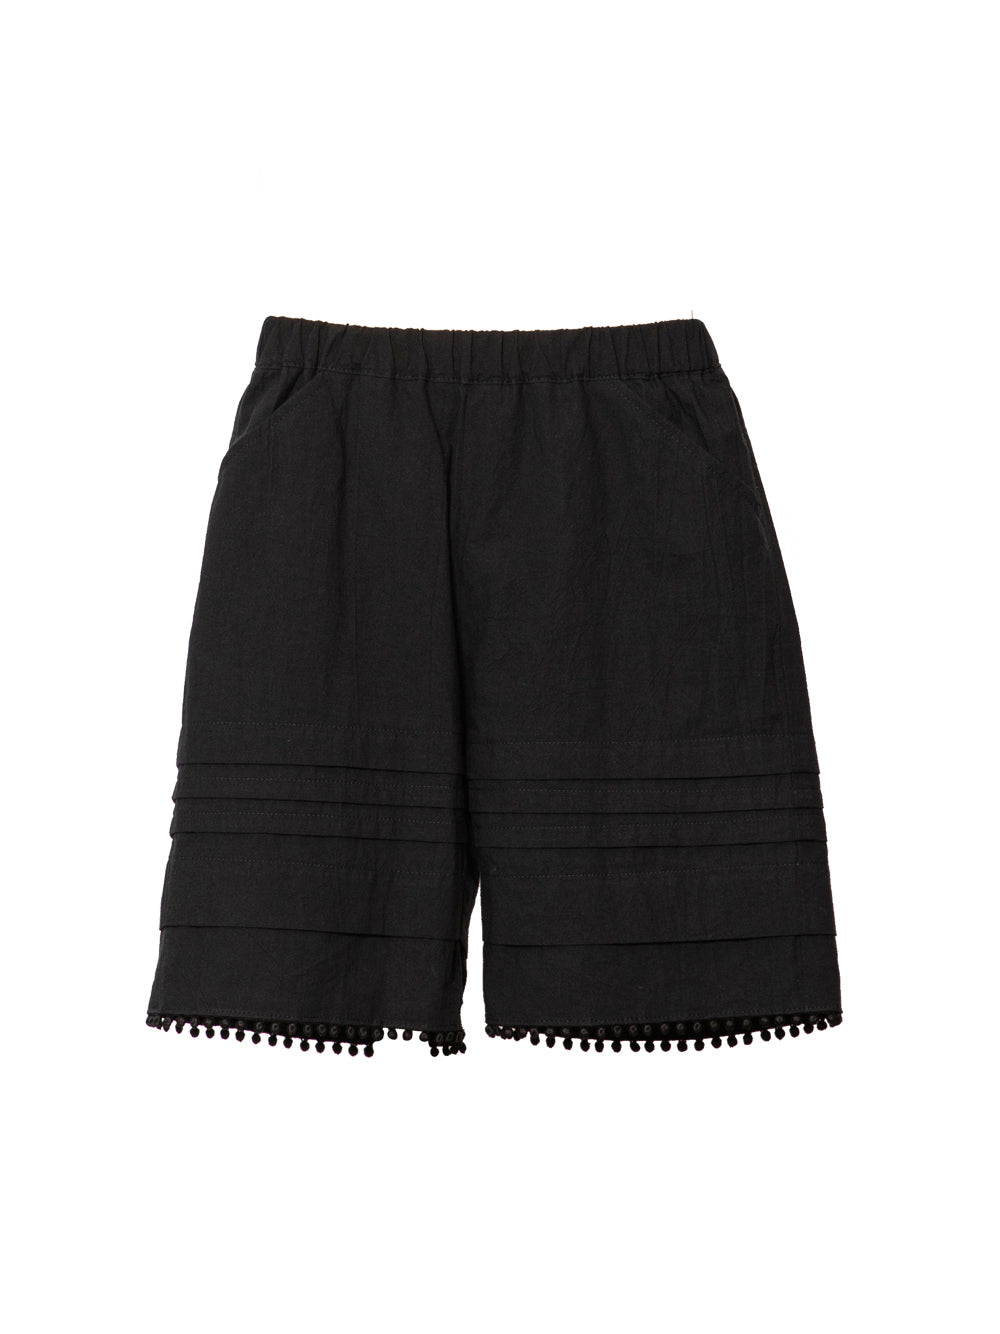 Black Tuck Shorts